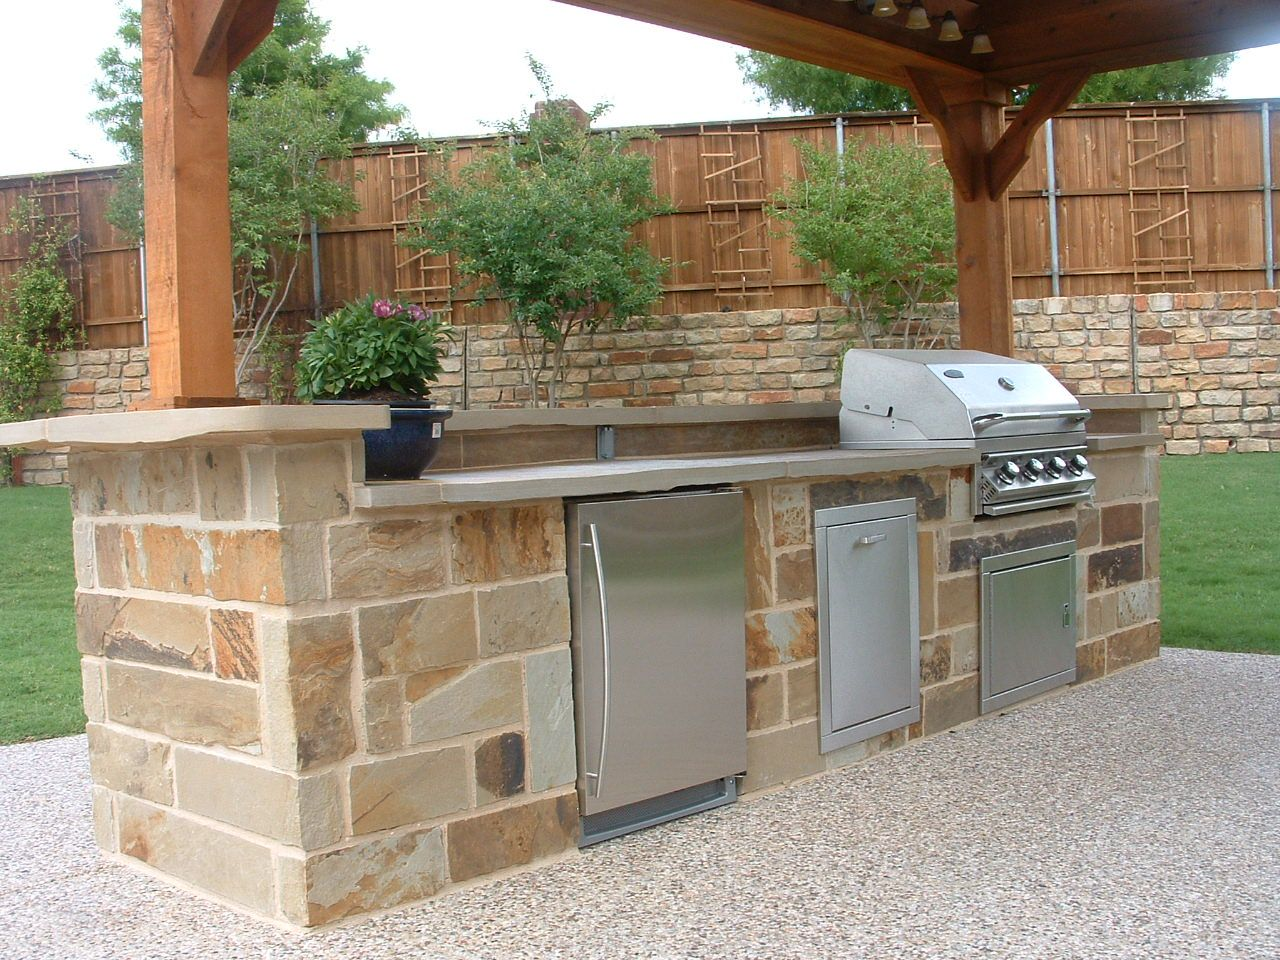 outdoor kitchen area with grilling station fort worth. Black Bedroom Furniture Sets. Home Design Ideas